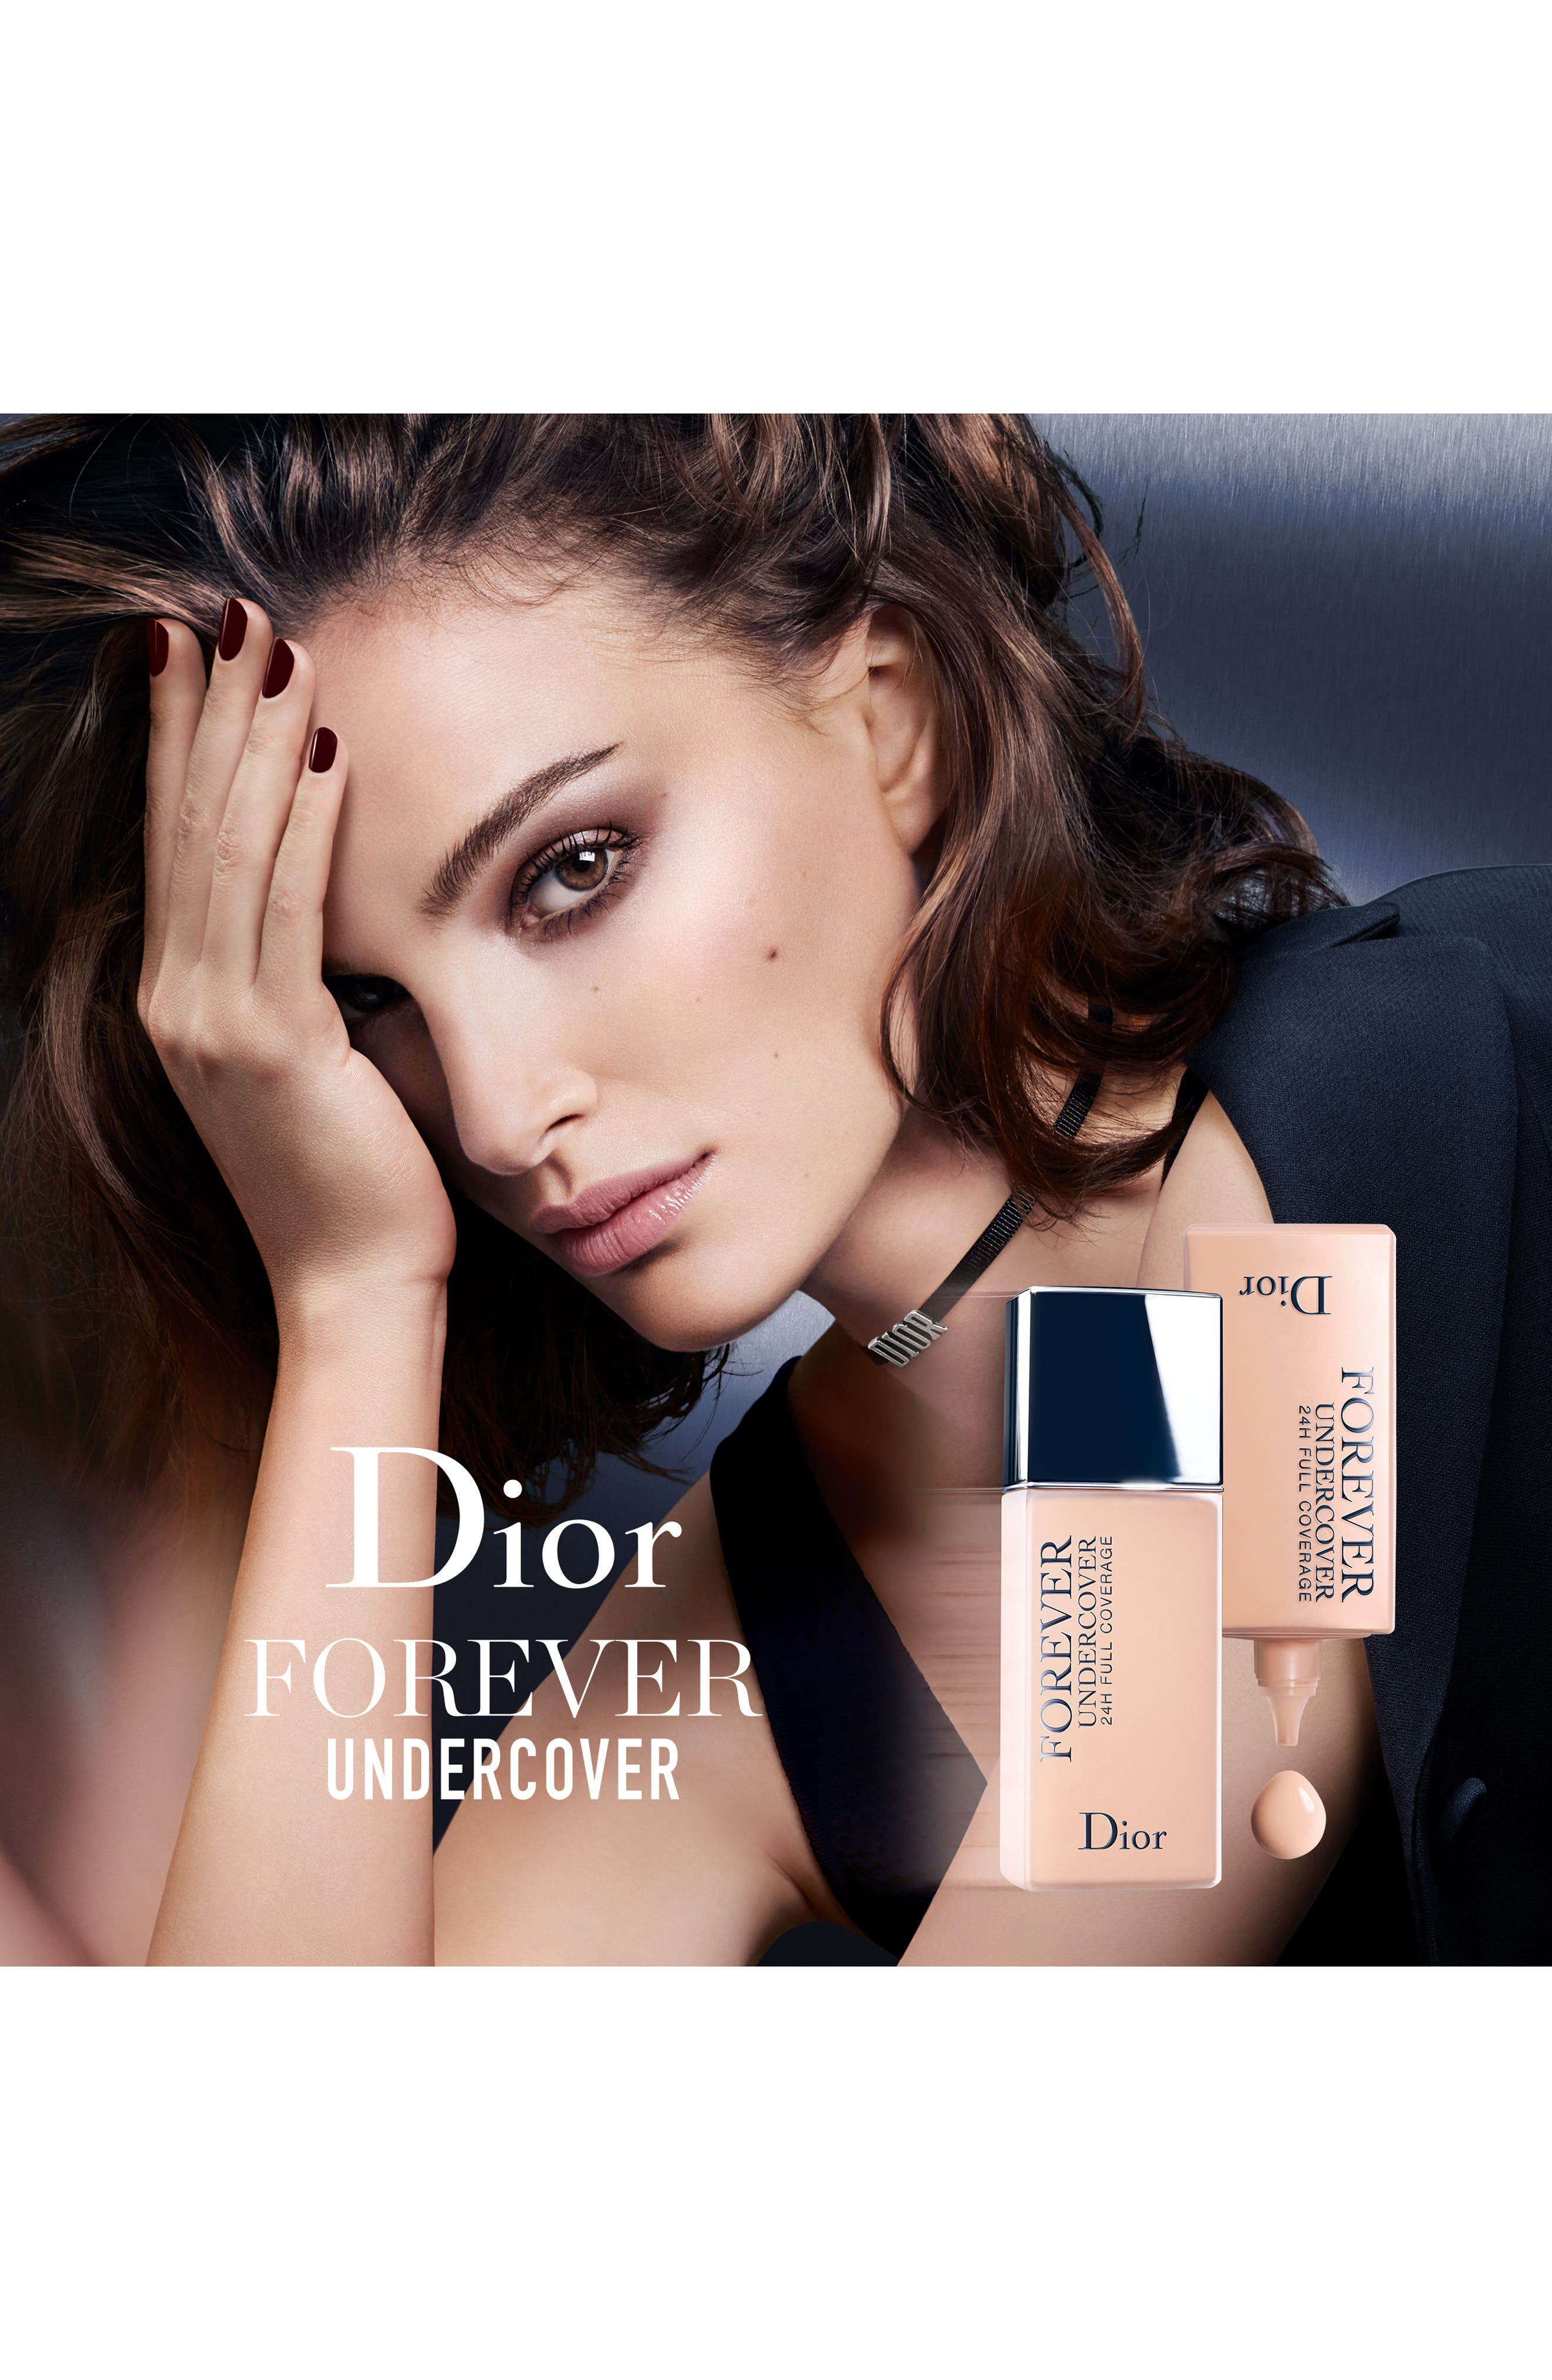 Diorskin Forever Undercover 24-Hour Full Coverage Water-Based Foundation,                             Alternate thumbnail 9, color,                             051 PRALINE